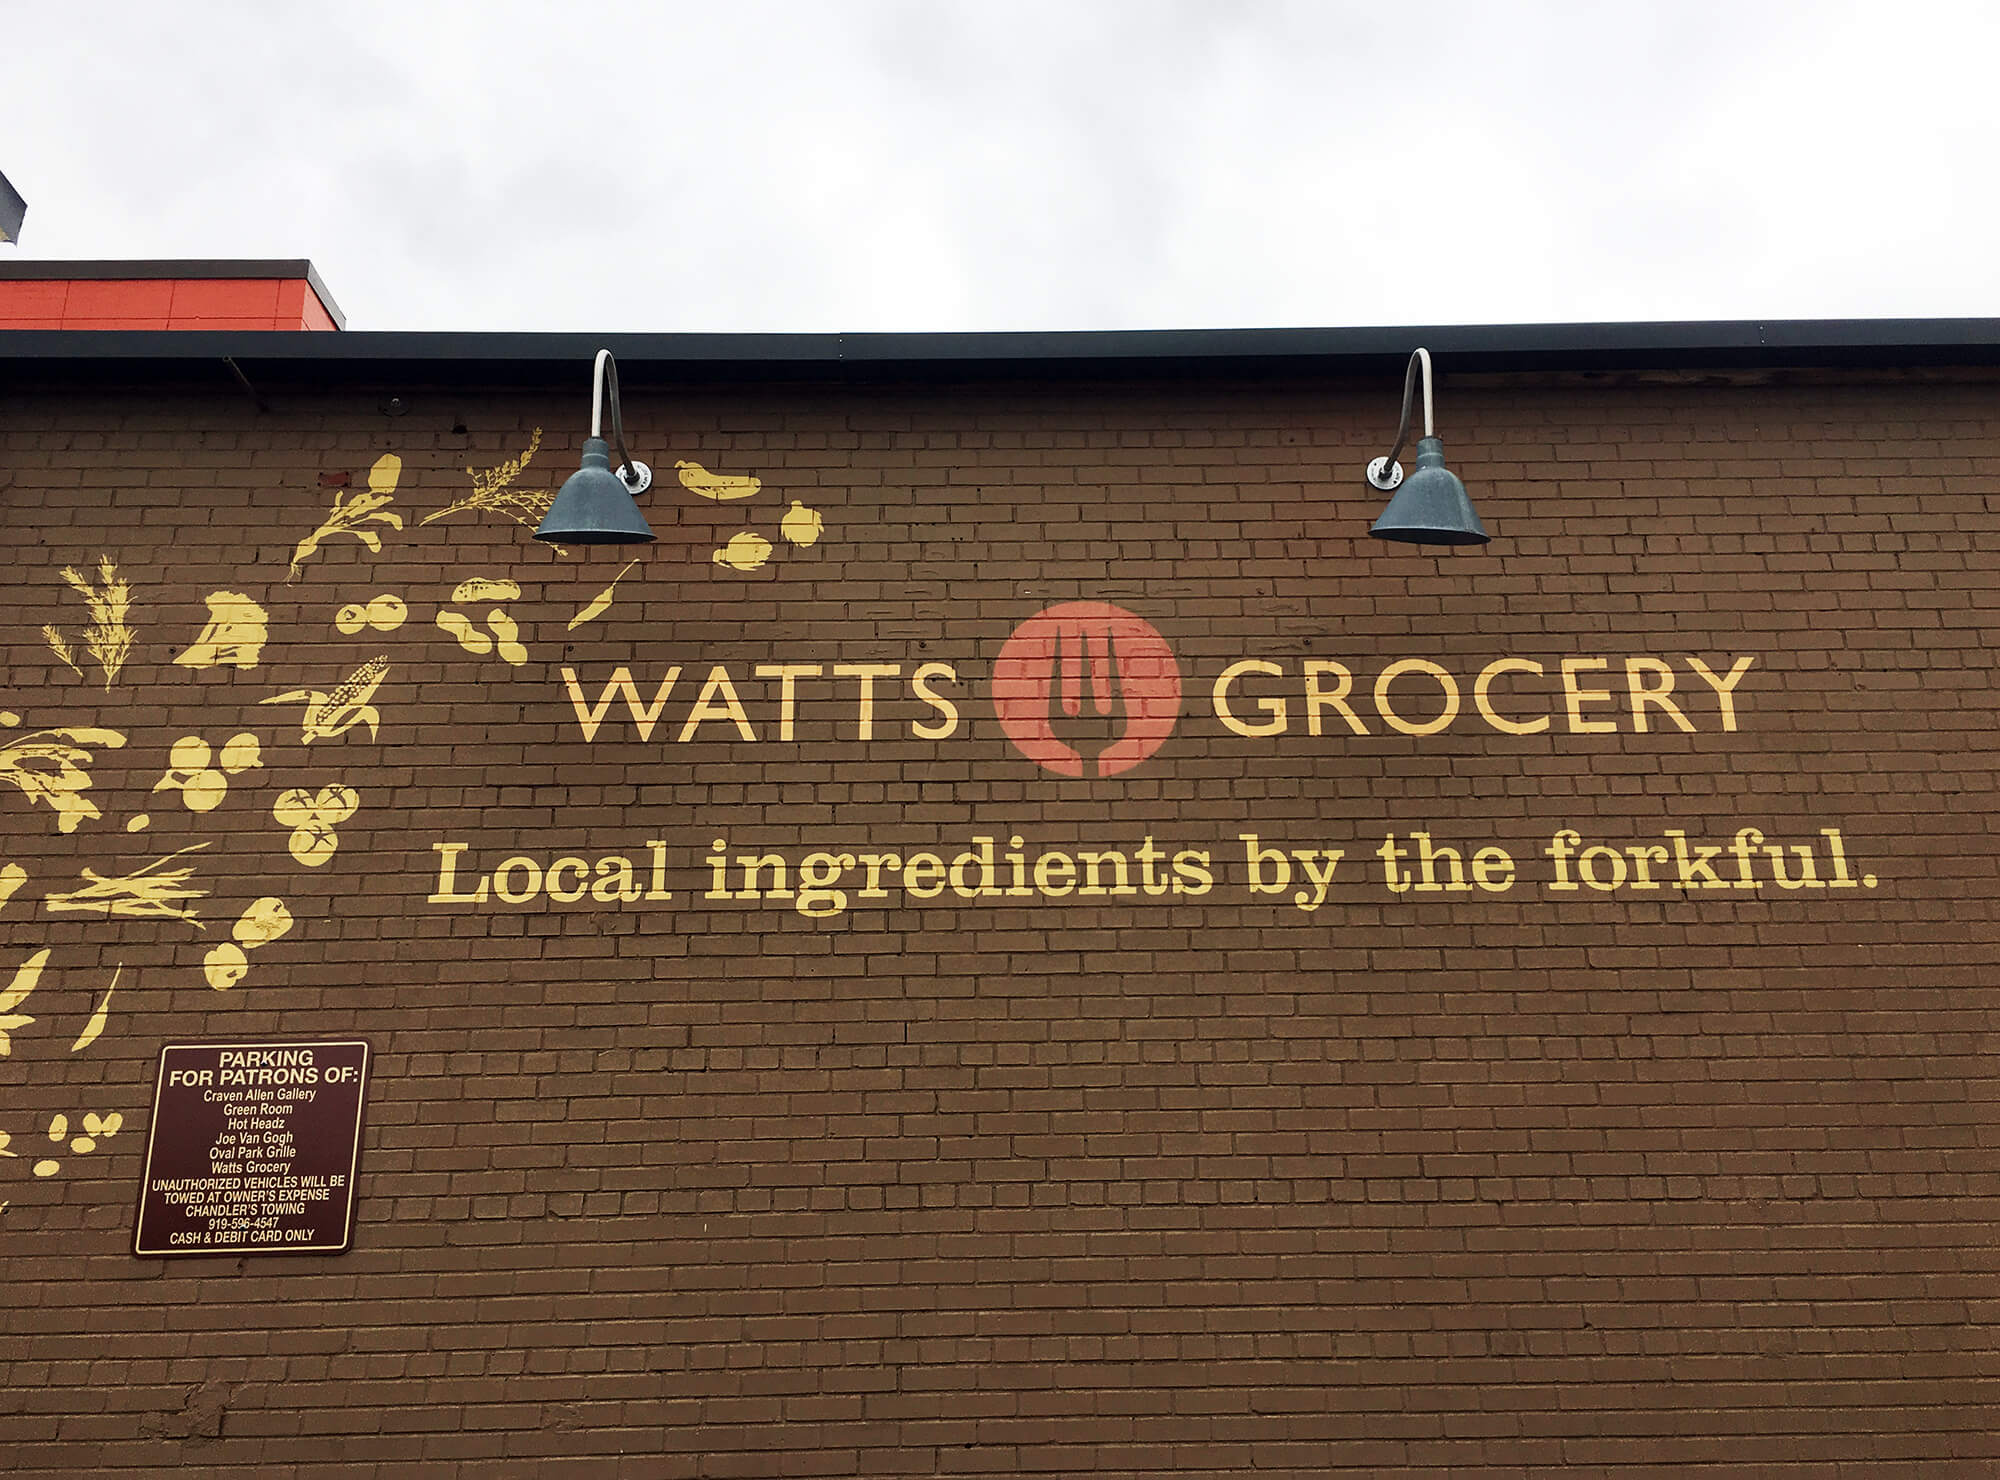 Watts Grocery signage, a great place for dining in Durham